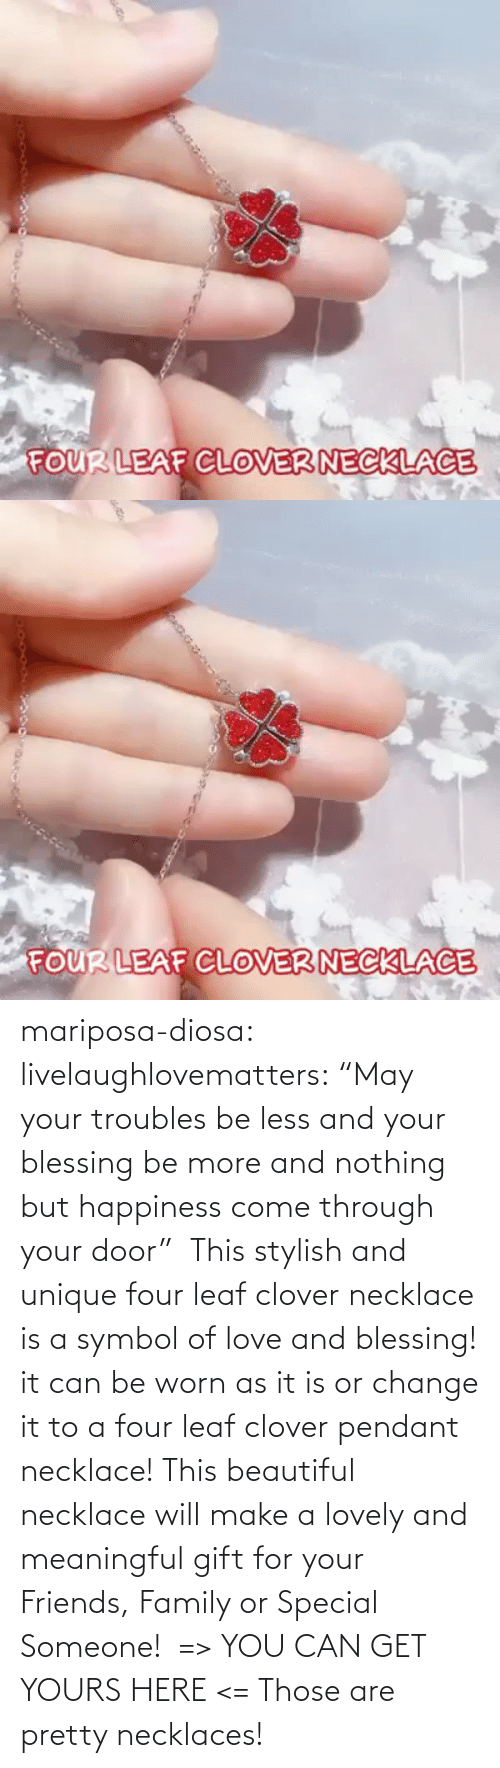 "symbol: mariposa-diosa: livelaughlovematters:  ""May your troubles be less and your blessing be more and nothing but happiness come through your door""  This stylish and unique four leaf clover necklace is a symbol of love and blessing! it can be worn as it is or change it to a four leaf clover pendant necklace! This beautiful necklace will make a lovely and meaningful gift for your Friends, Family or Special Someone!  => YOU CAN GET YOURS HERE <=    Those are pretty necklaces!"